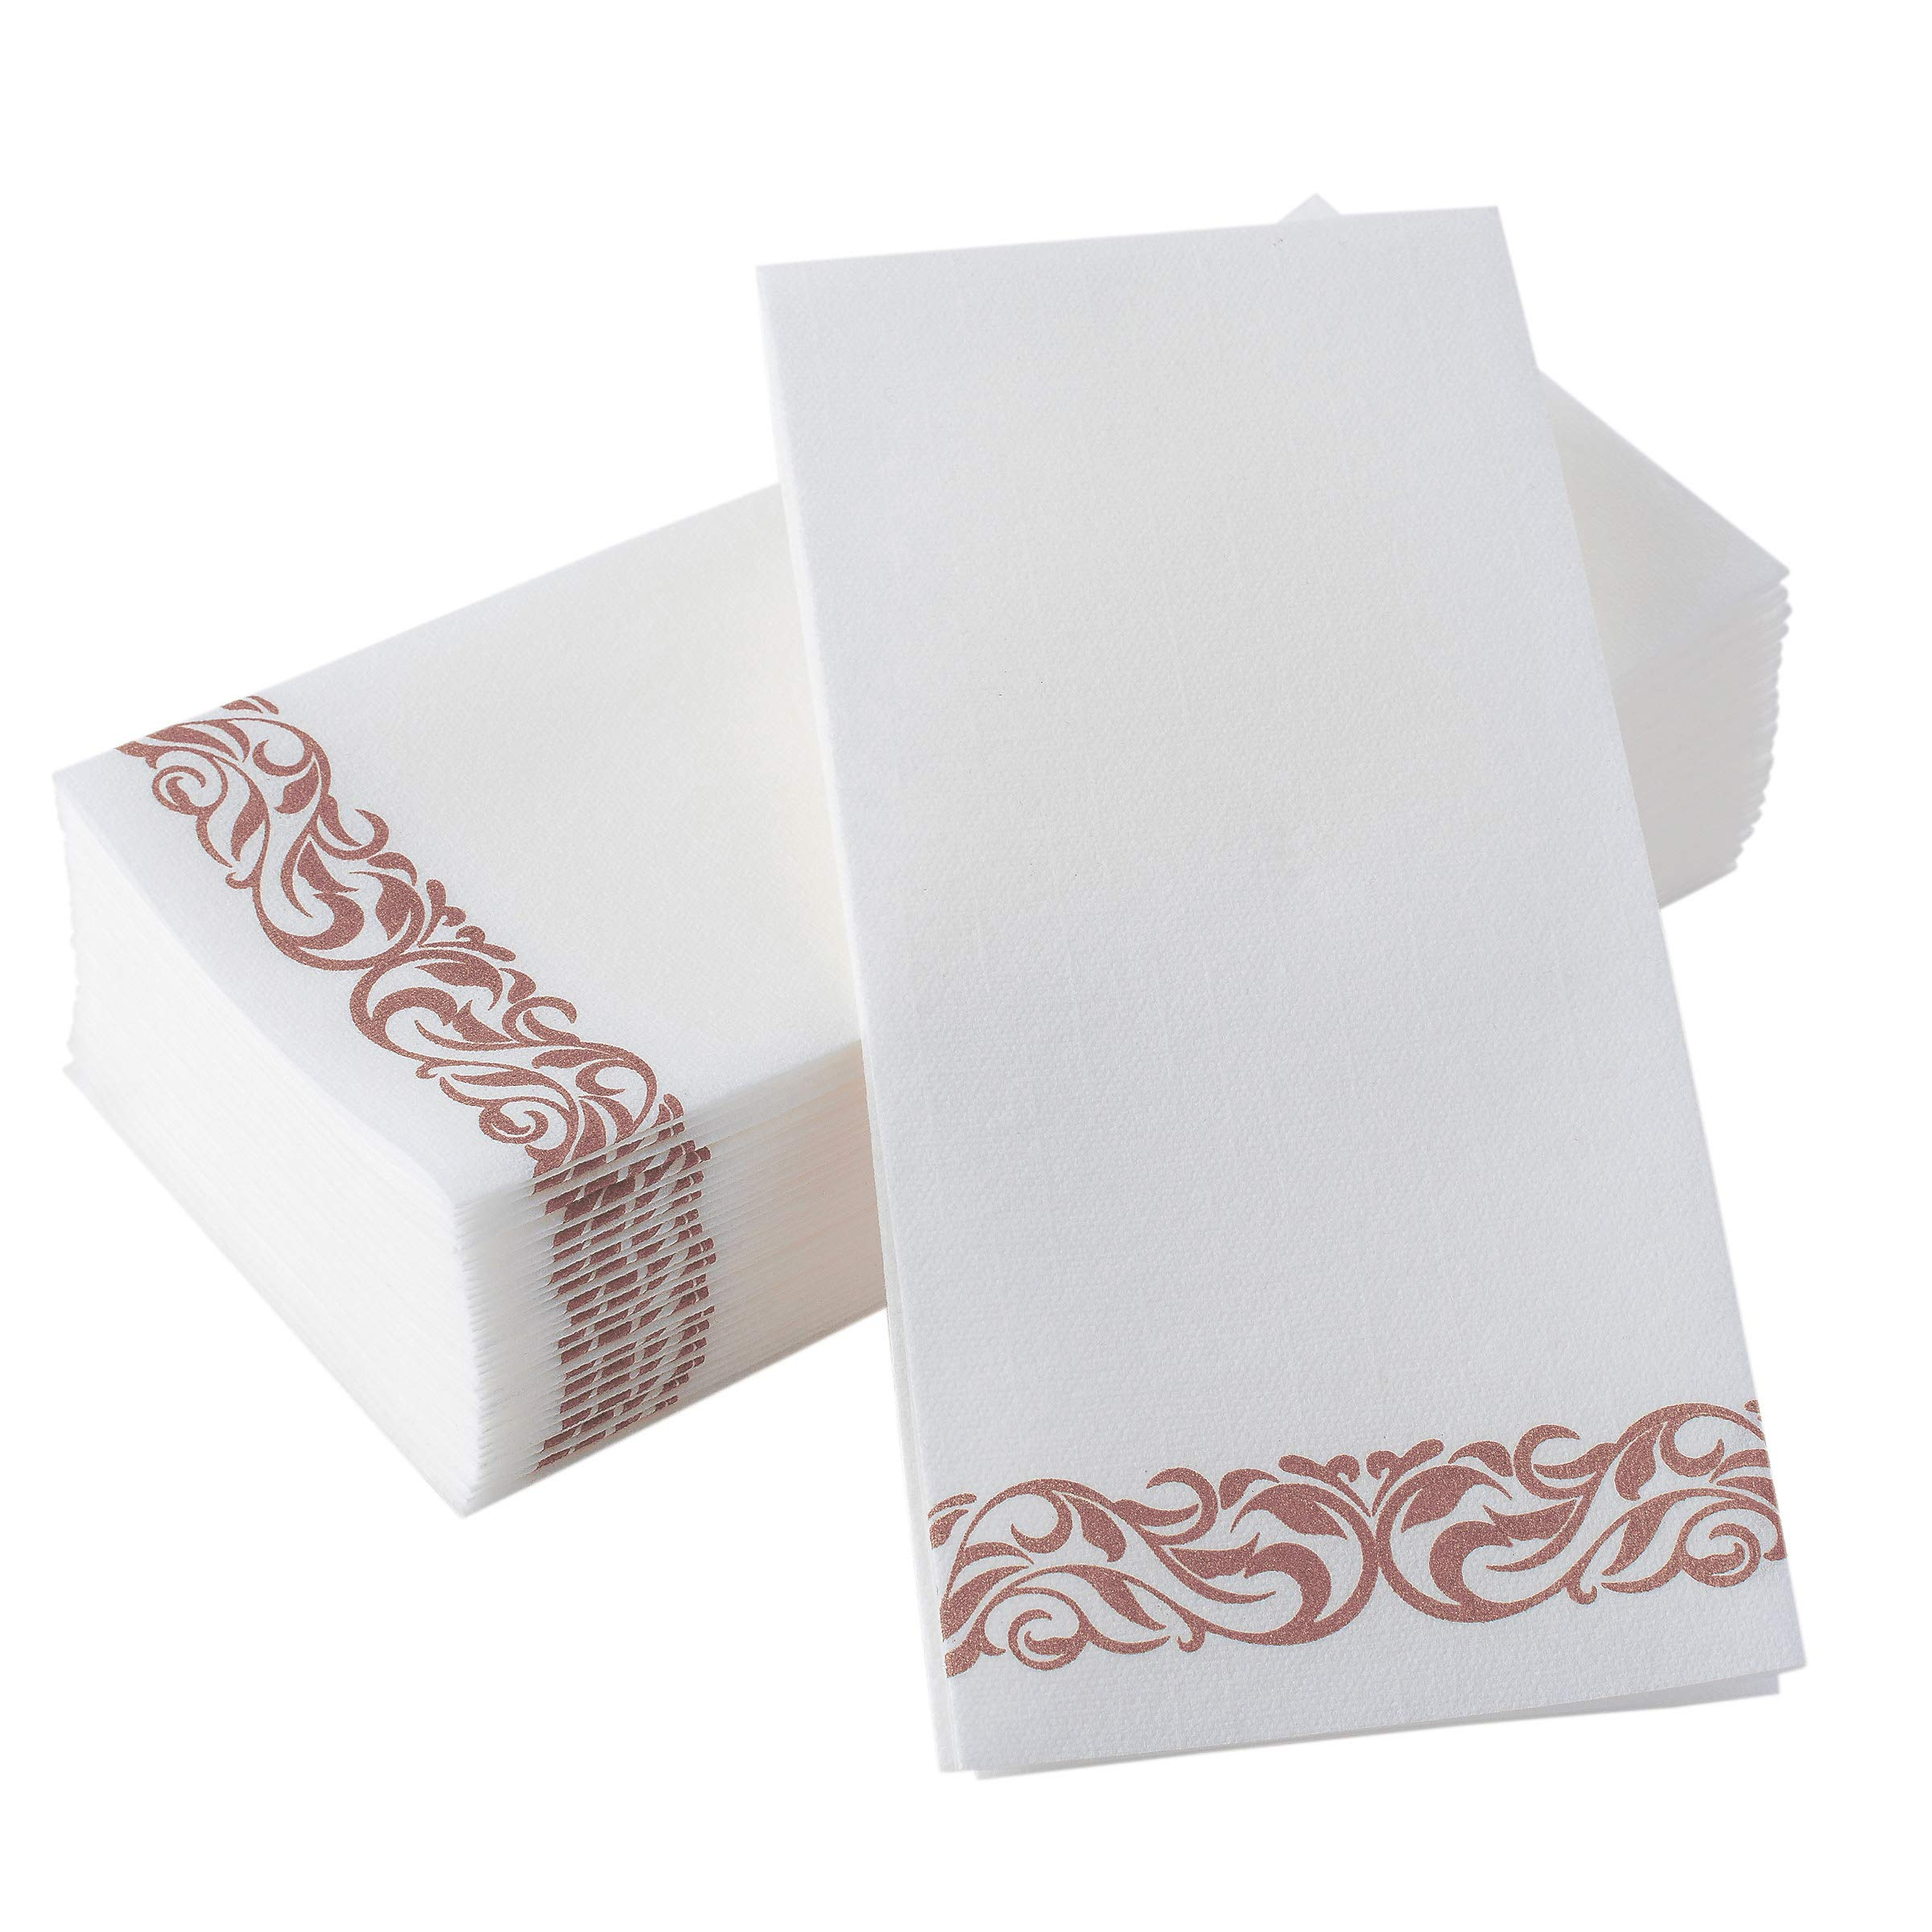 BloominGoods Disposable Hand Towels & Decorative Bathroom Napkins   Soft and Absorbent Linen-Feel Paper Guest Towels for Kitchen, Parties, Weddings, Dinners or Events   White and Rose Gold (100-Pack)